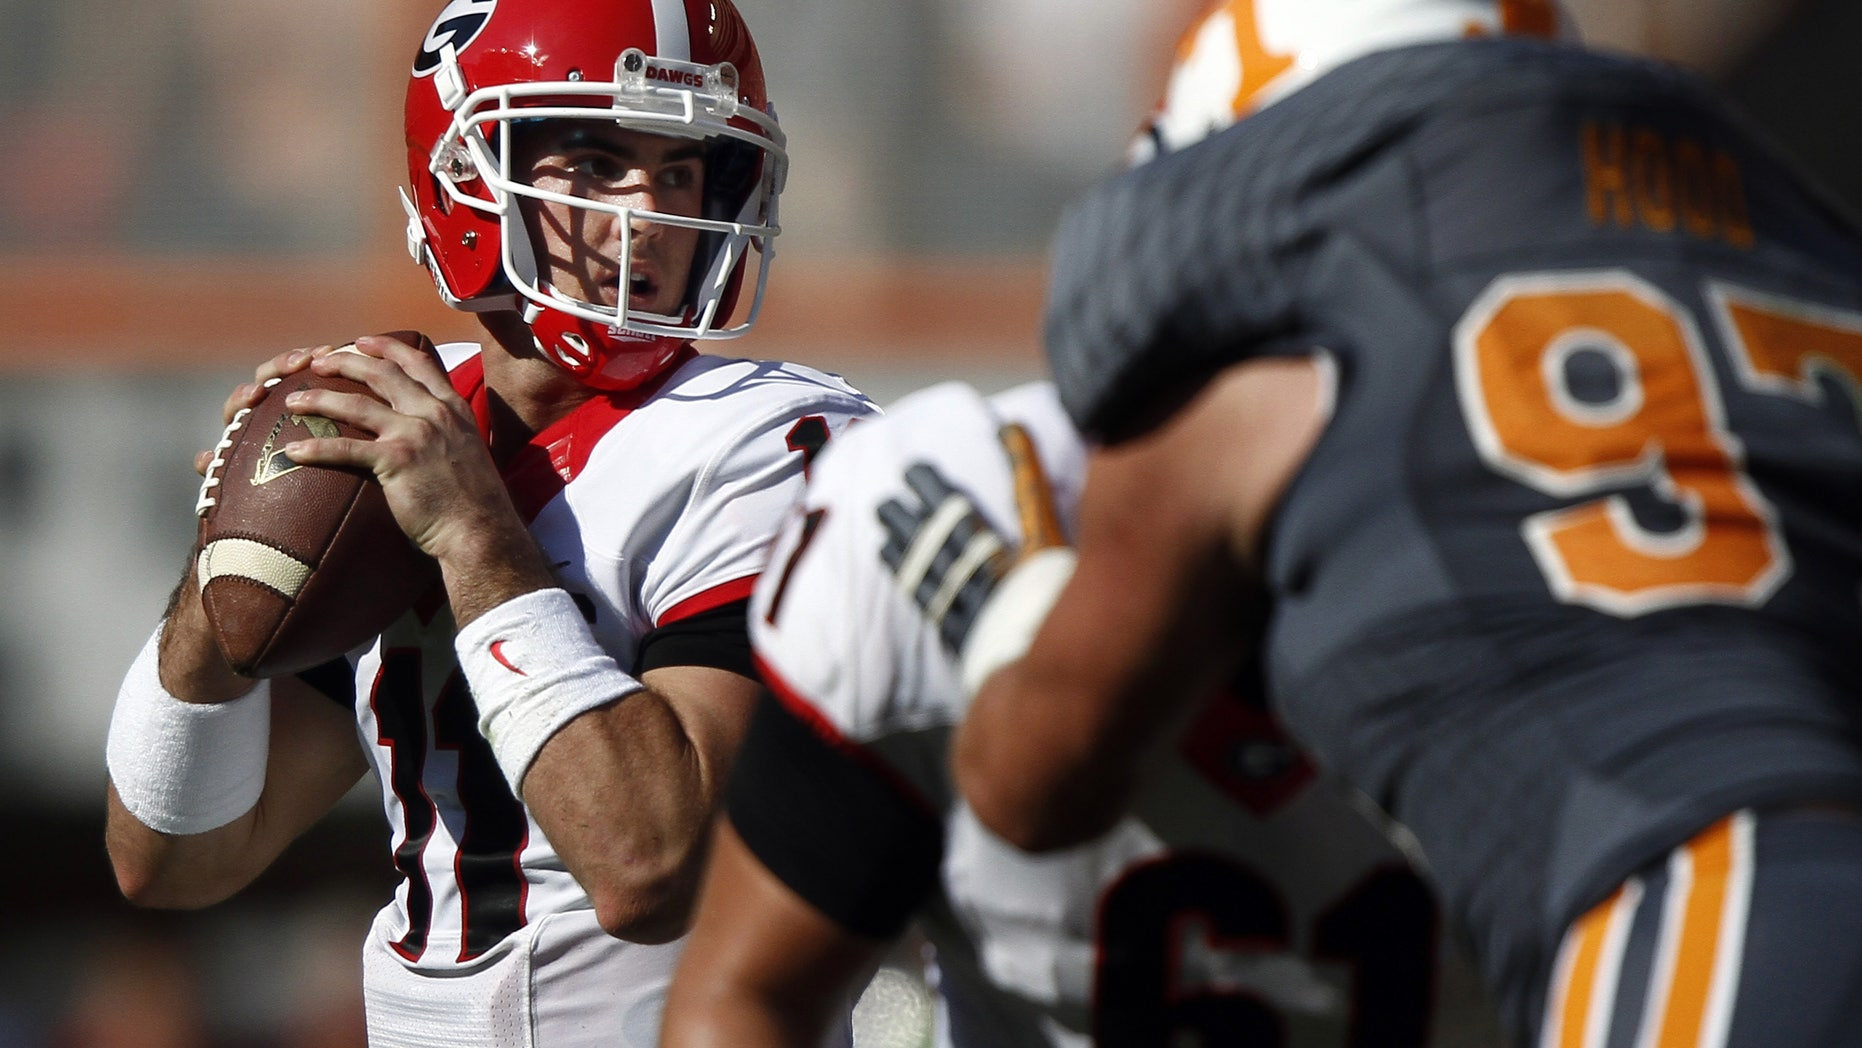 Georgia quarterback Aaron Murray (11) looks for a receiver in the first quarter of an NCAA college football game against Tennessee on Saturday, Oct. 5, 2013, in Knoxville, Tenn. (AP Photo/Wade Payne)